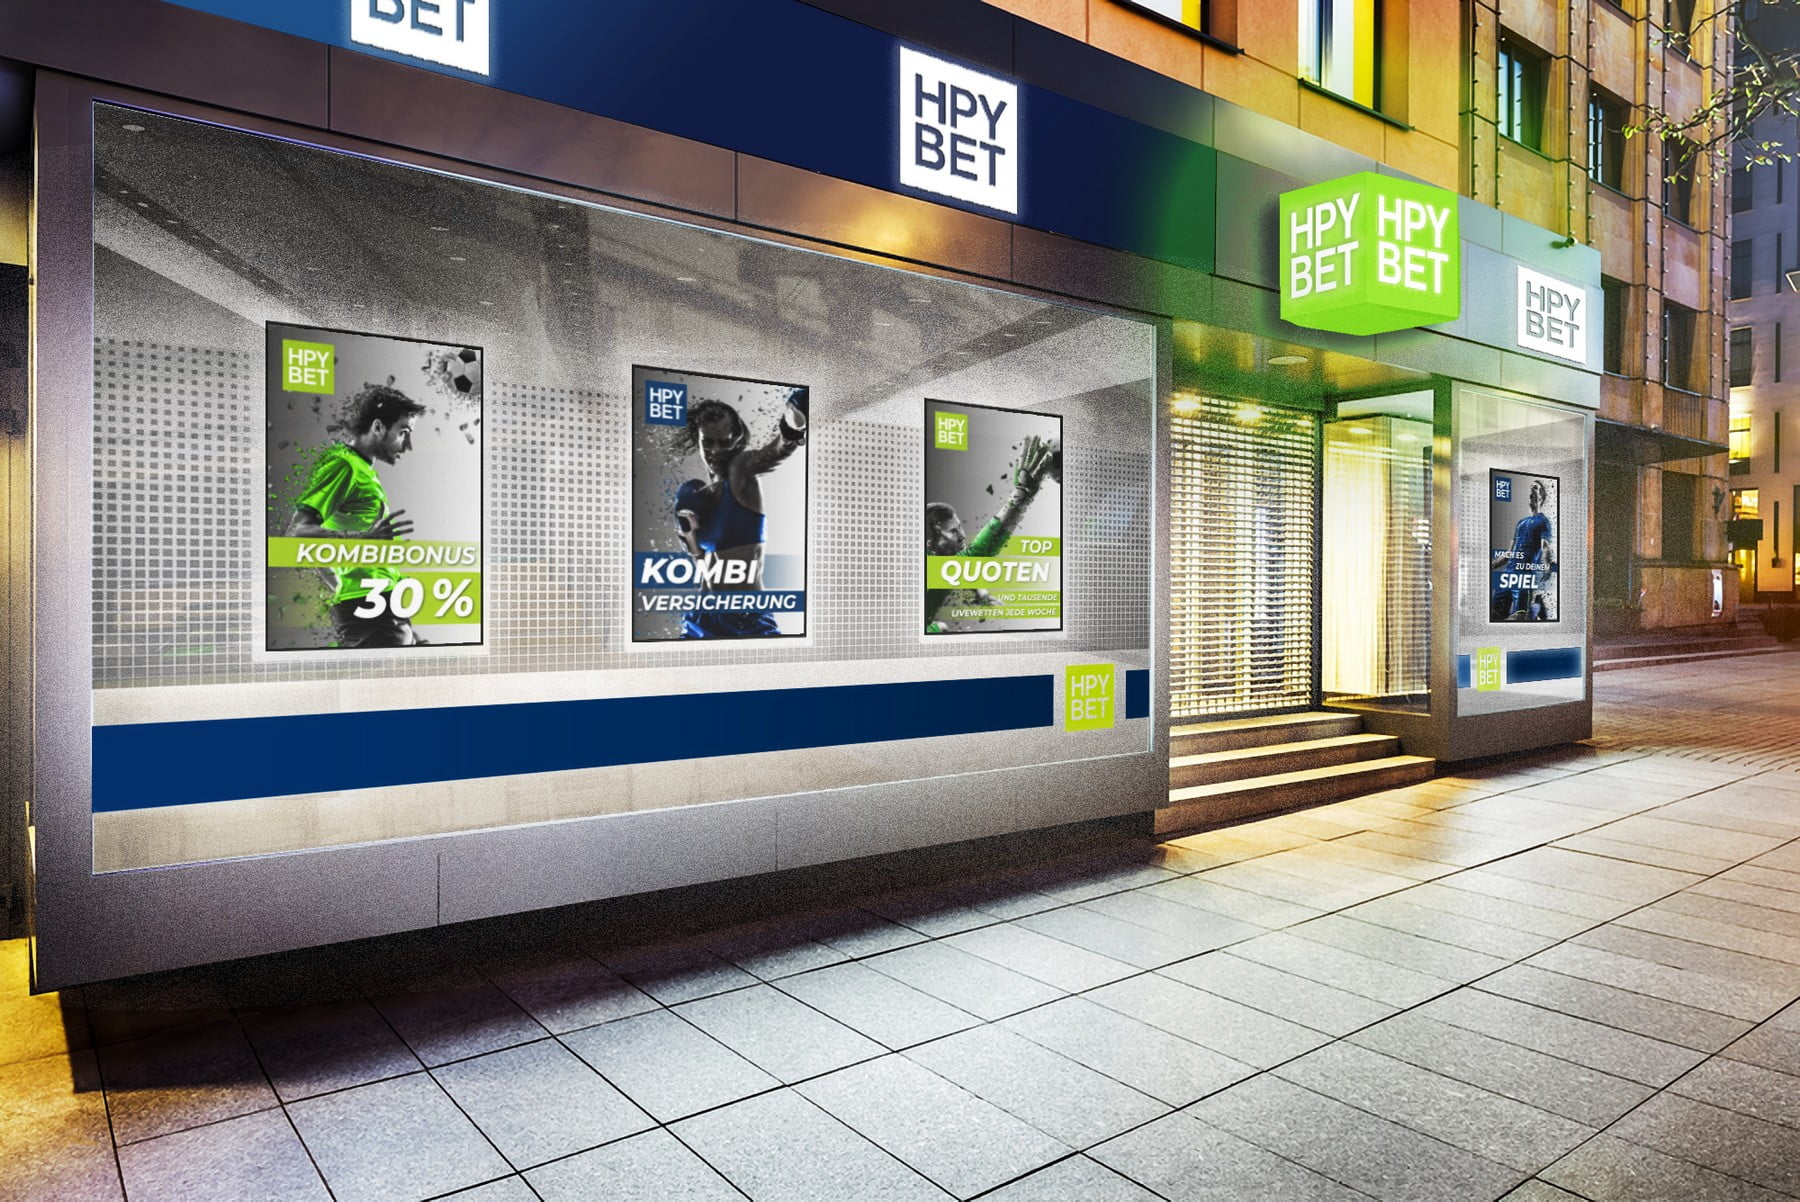 HPYBET Receives Location Licence For Rhineland-Palatinate